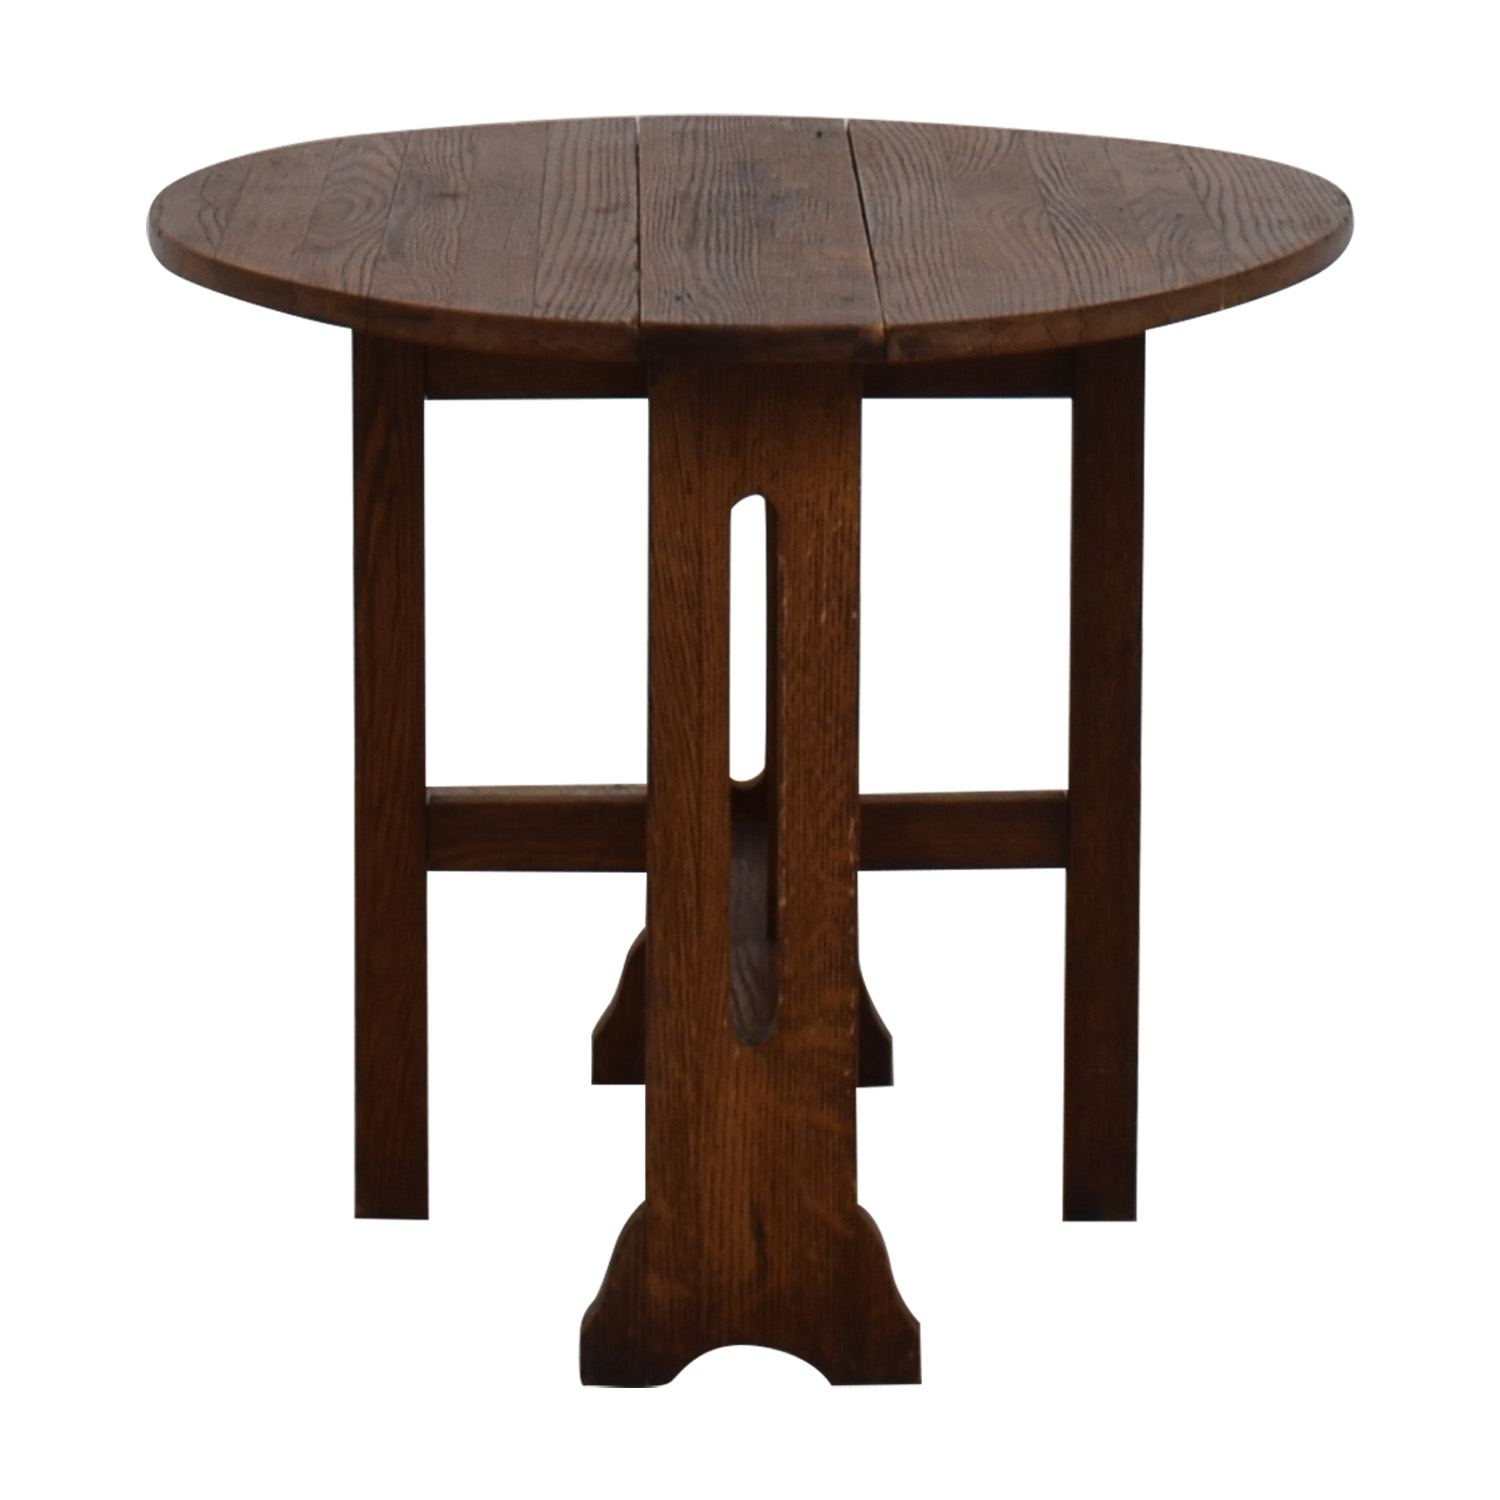 Antique Expandable Mission Coffee Table / Accent Tables